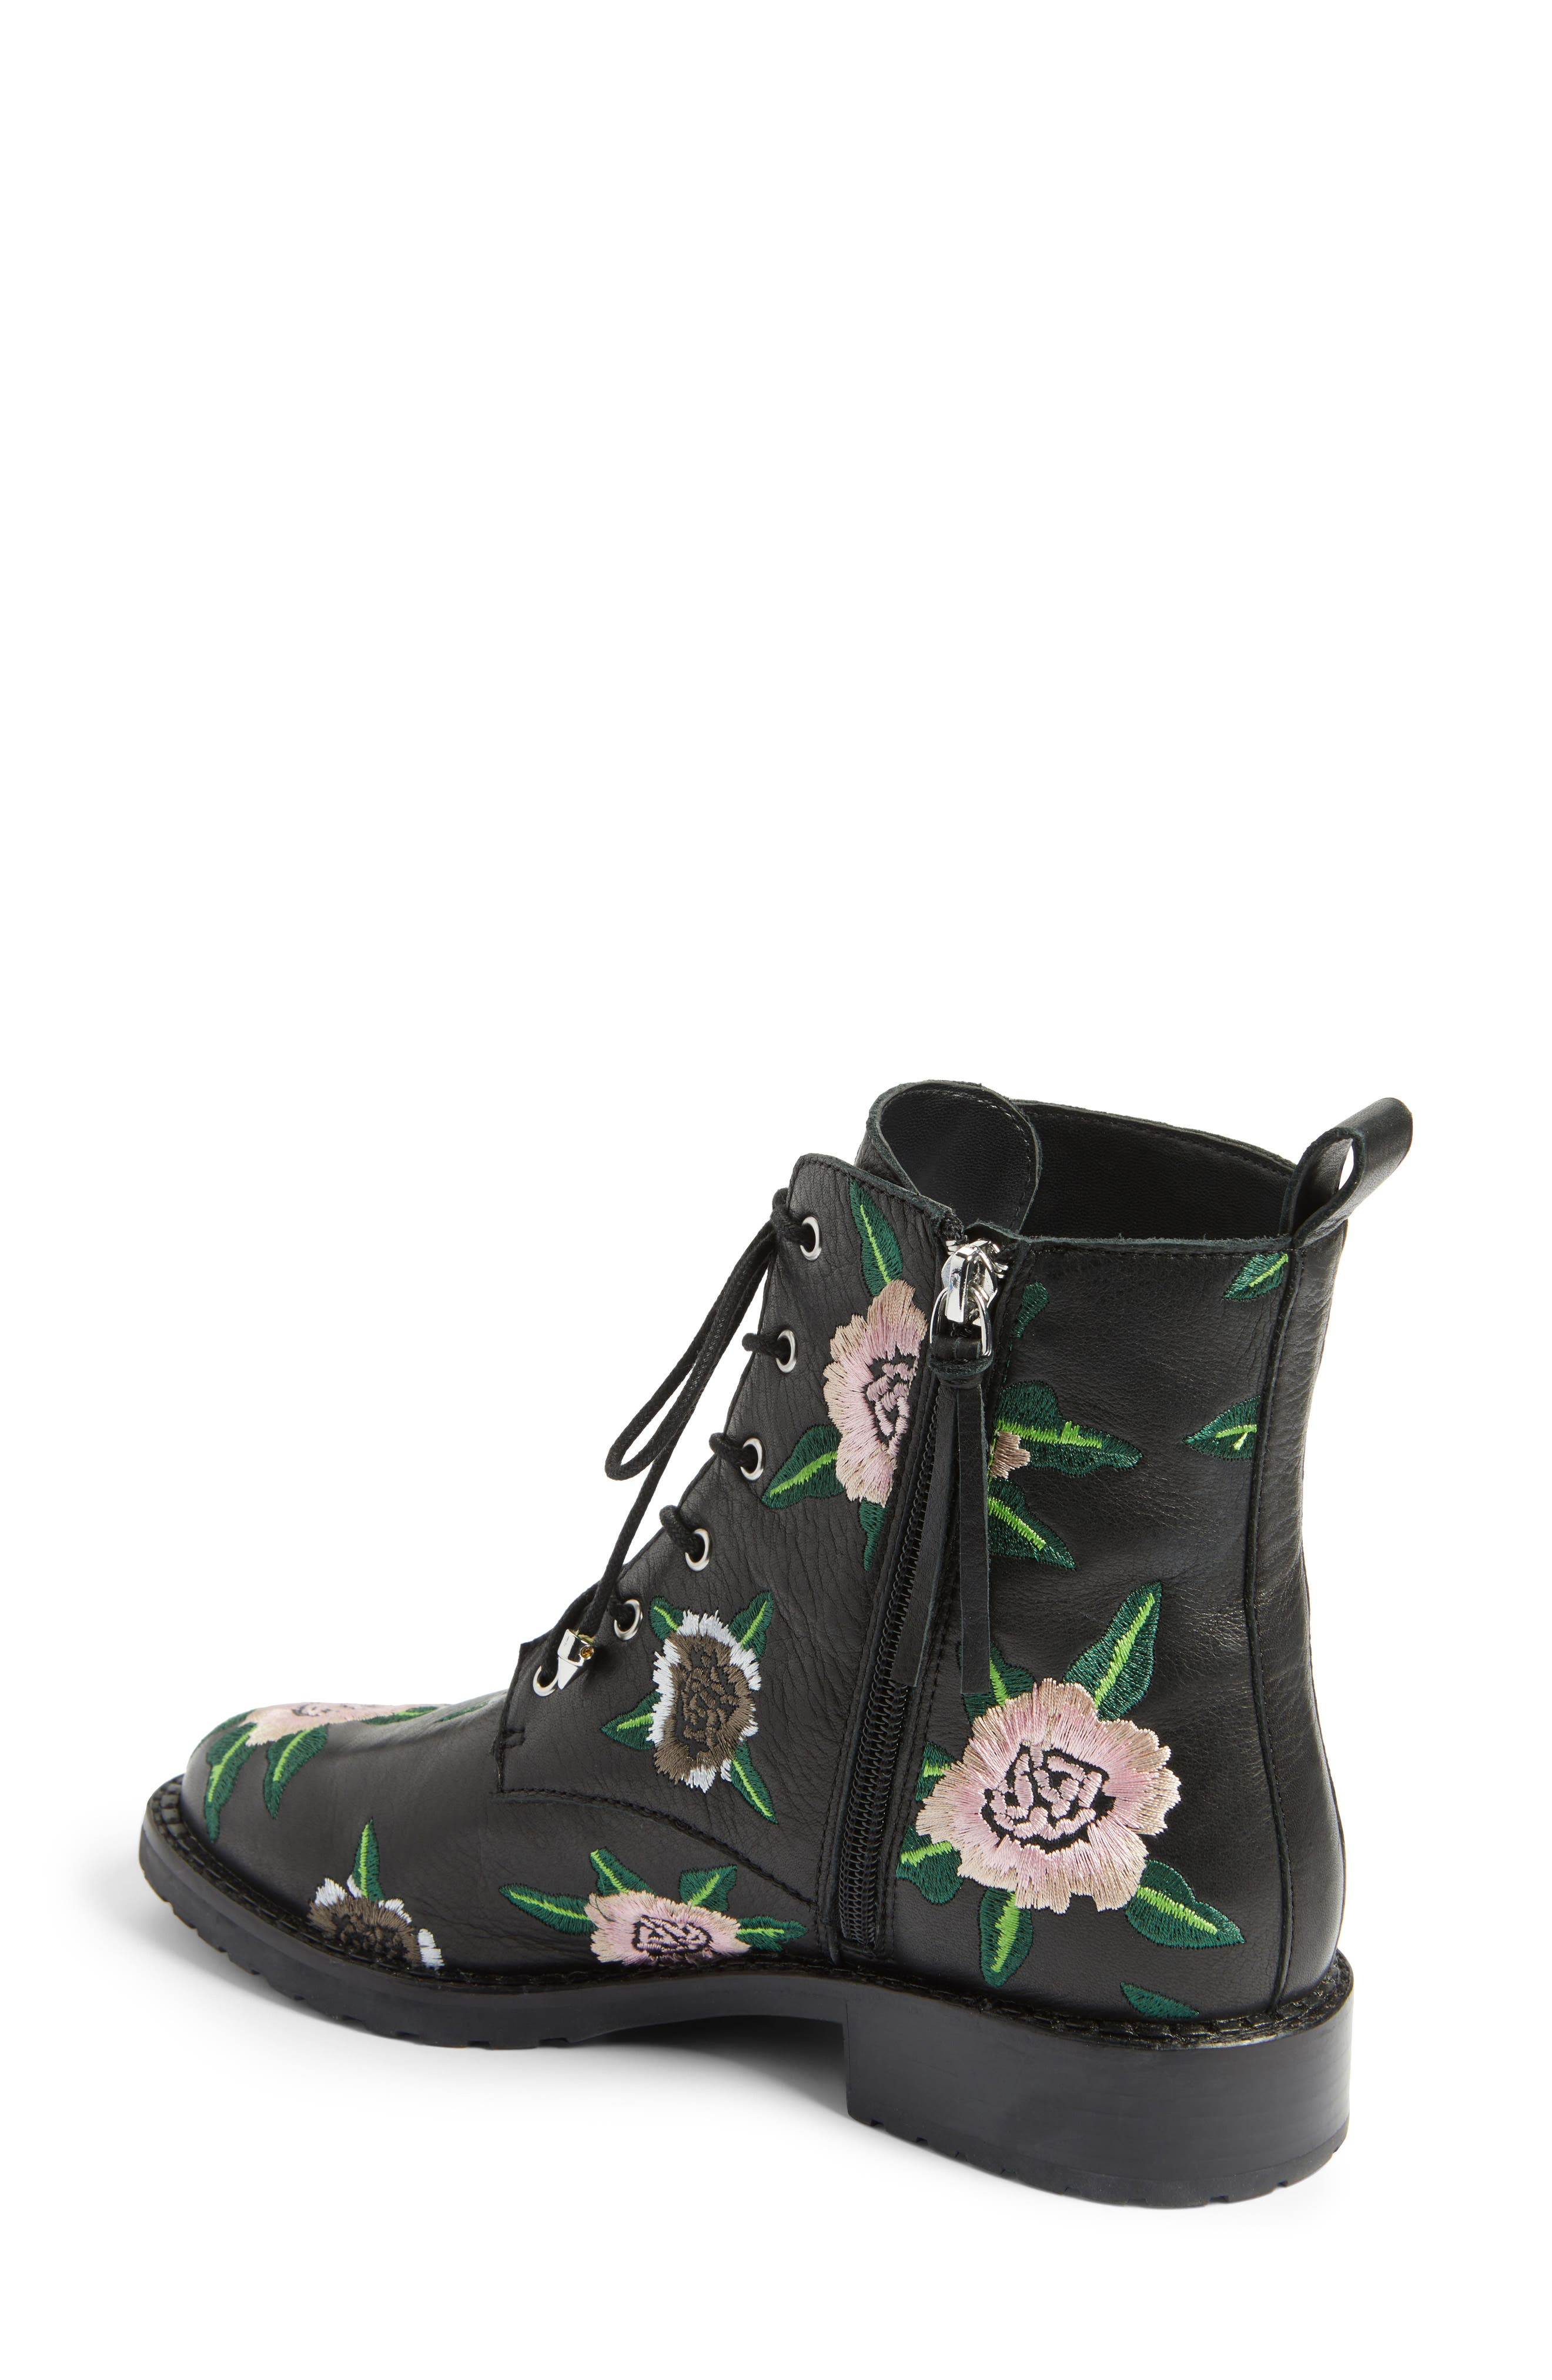 Gerry Embroidered Lace-Up Boot,                             Alternate thumbnail 2, color,                             001